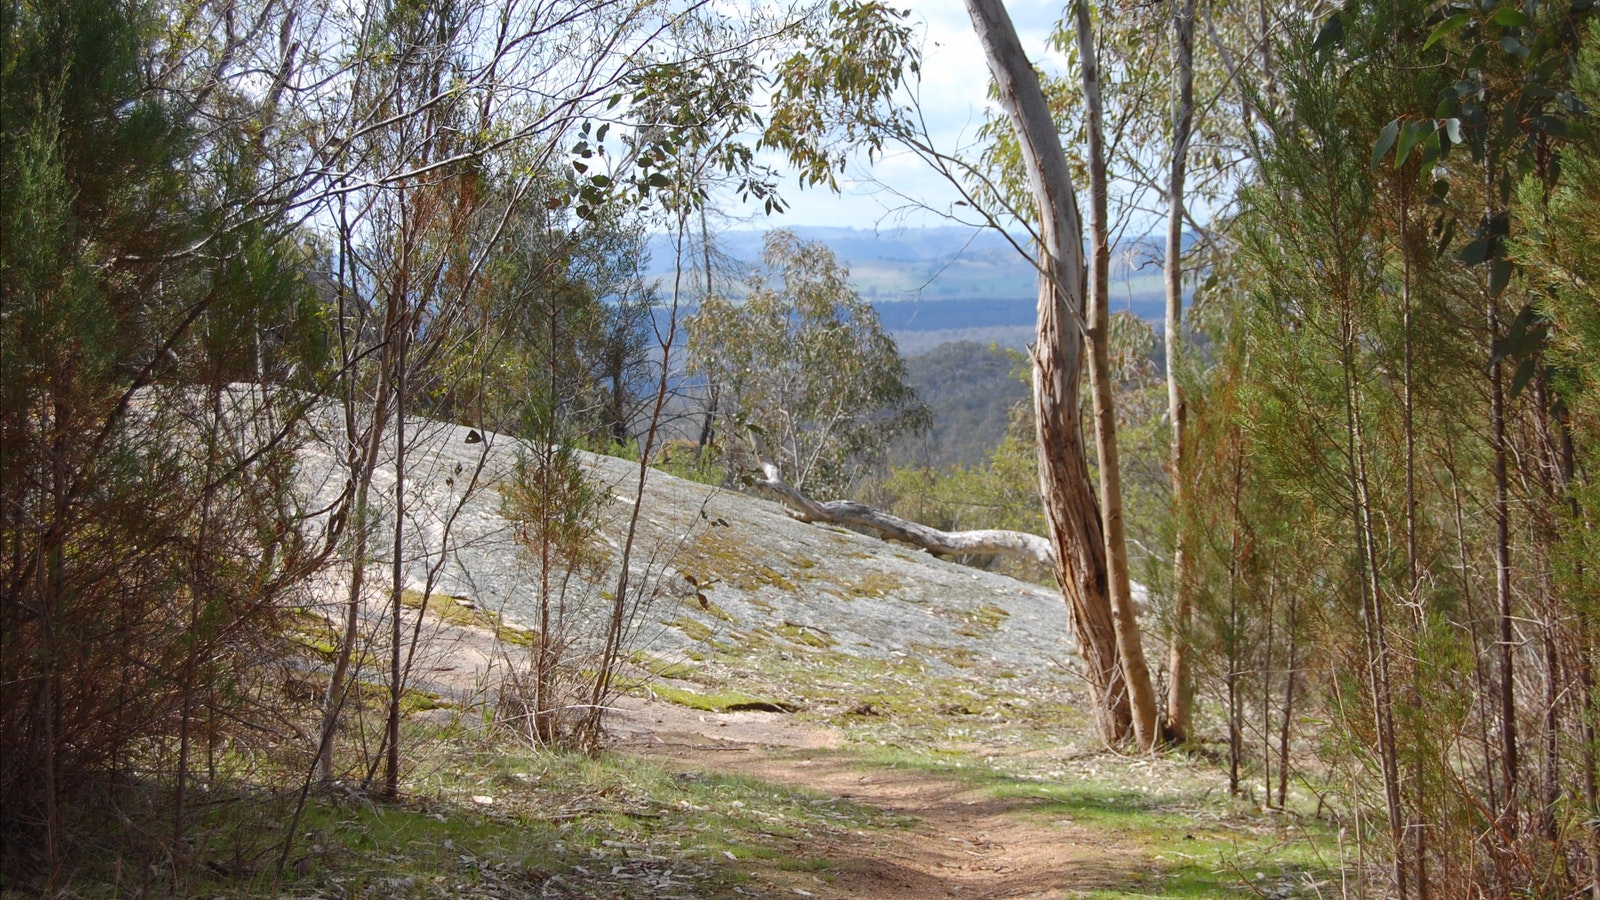 View from path on climb up Mt Pilot